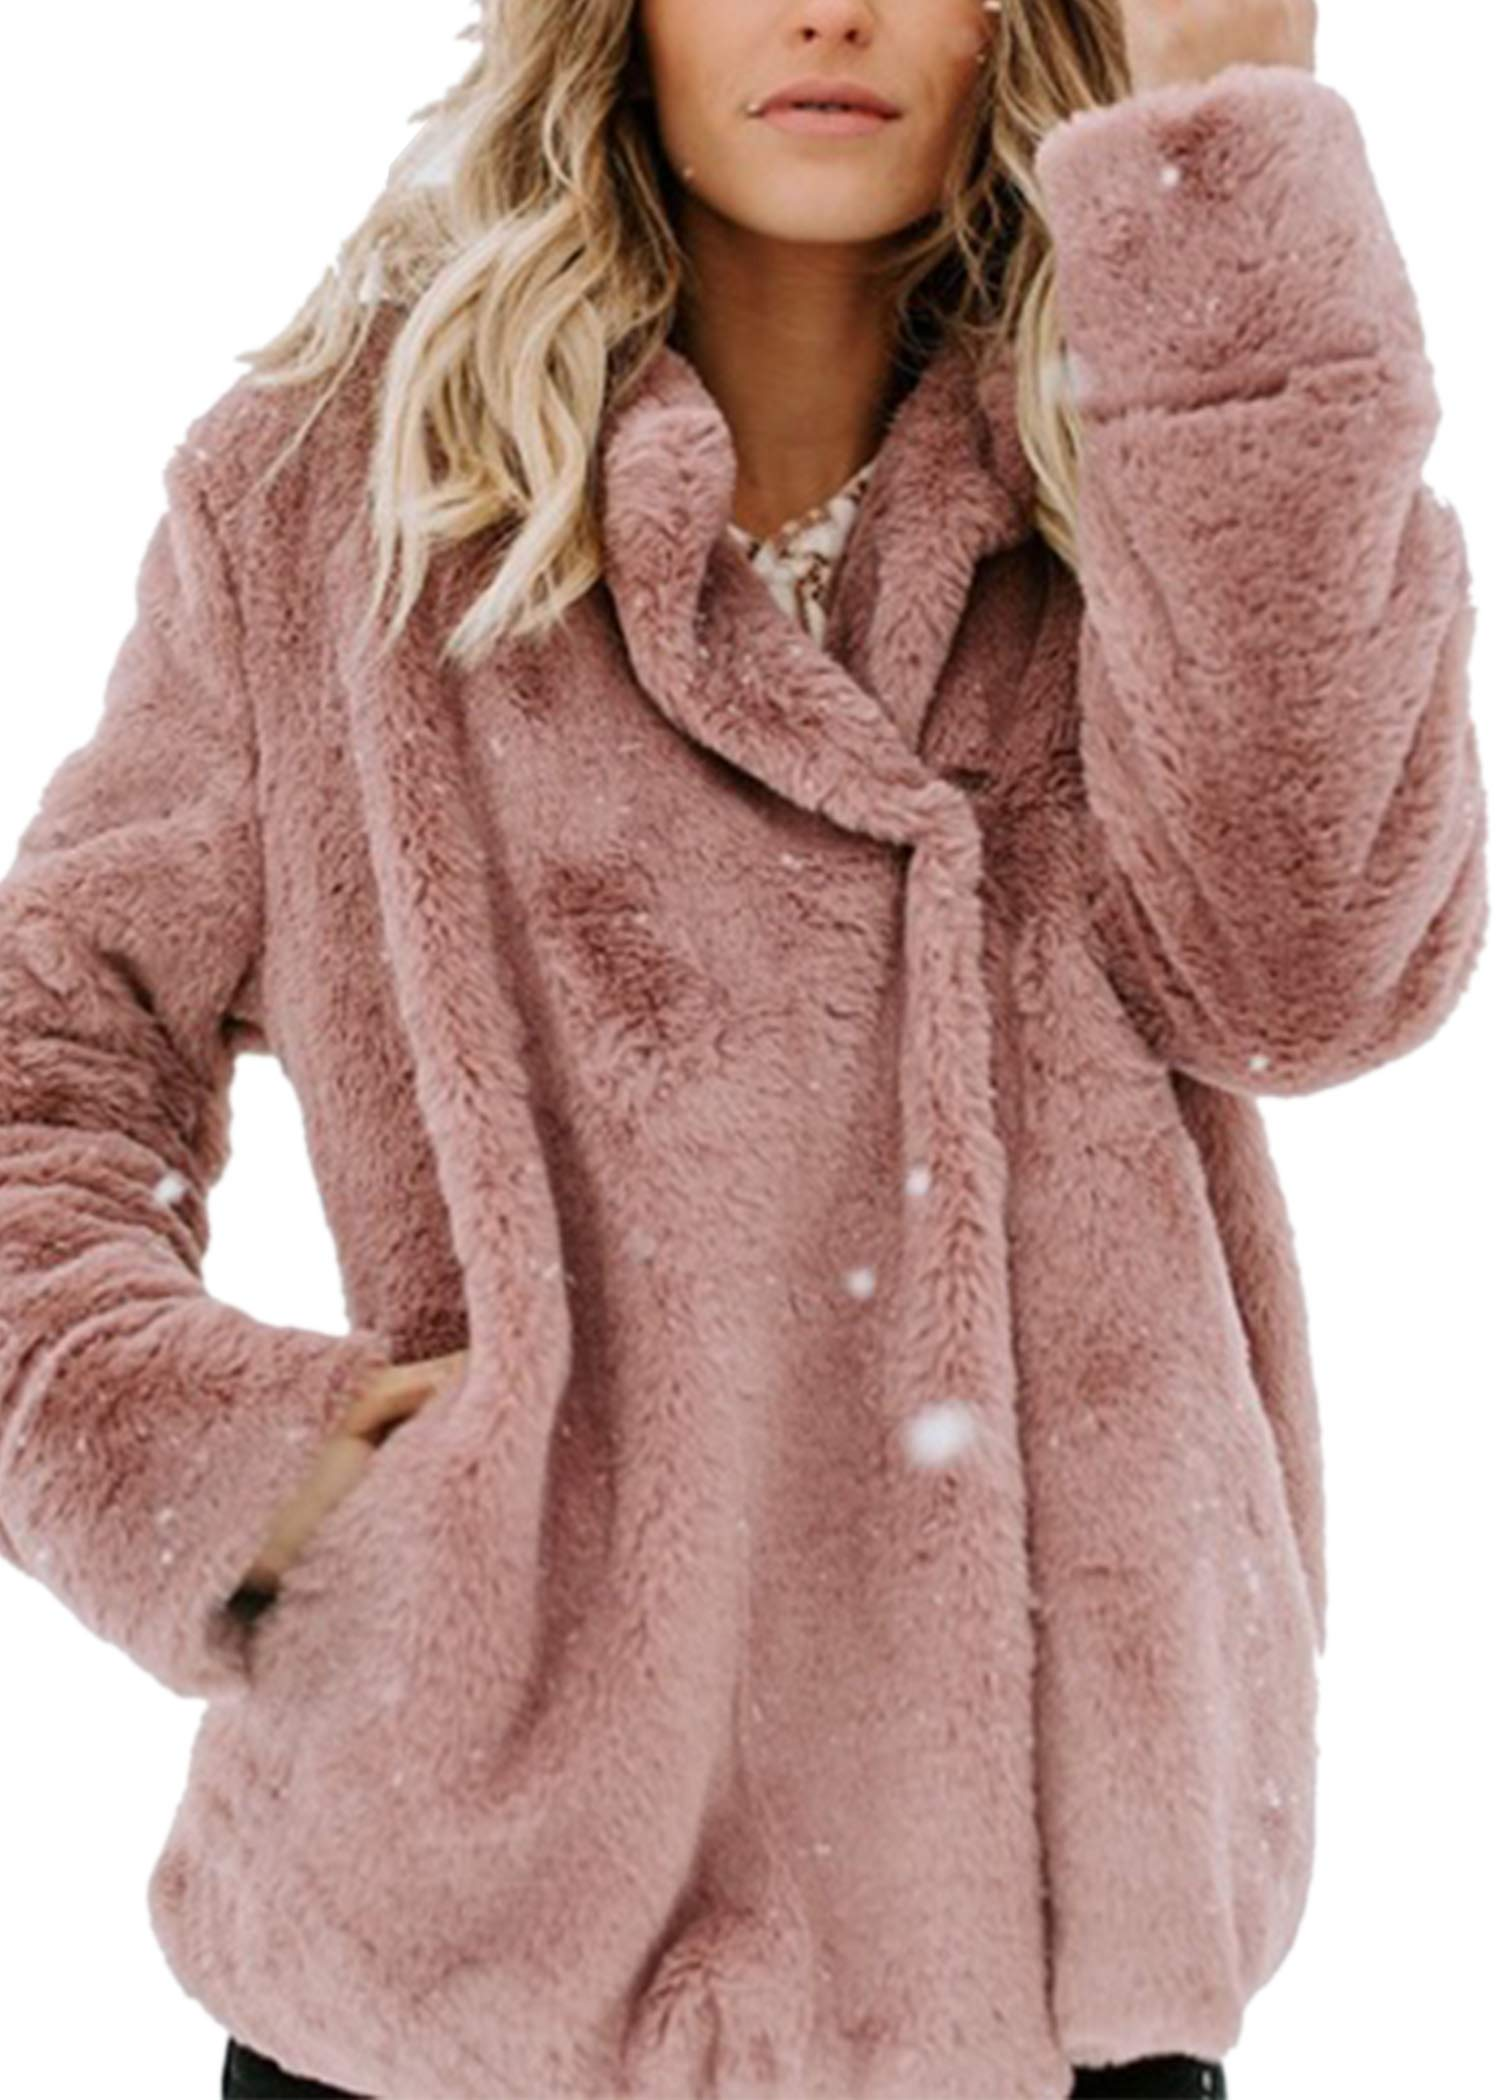 Angashion Women's Long Sleeve Lapel Faux Fur Button Oversized Warm Winter Jacket Coat Outwear with Pockets Pink M